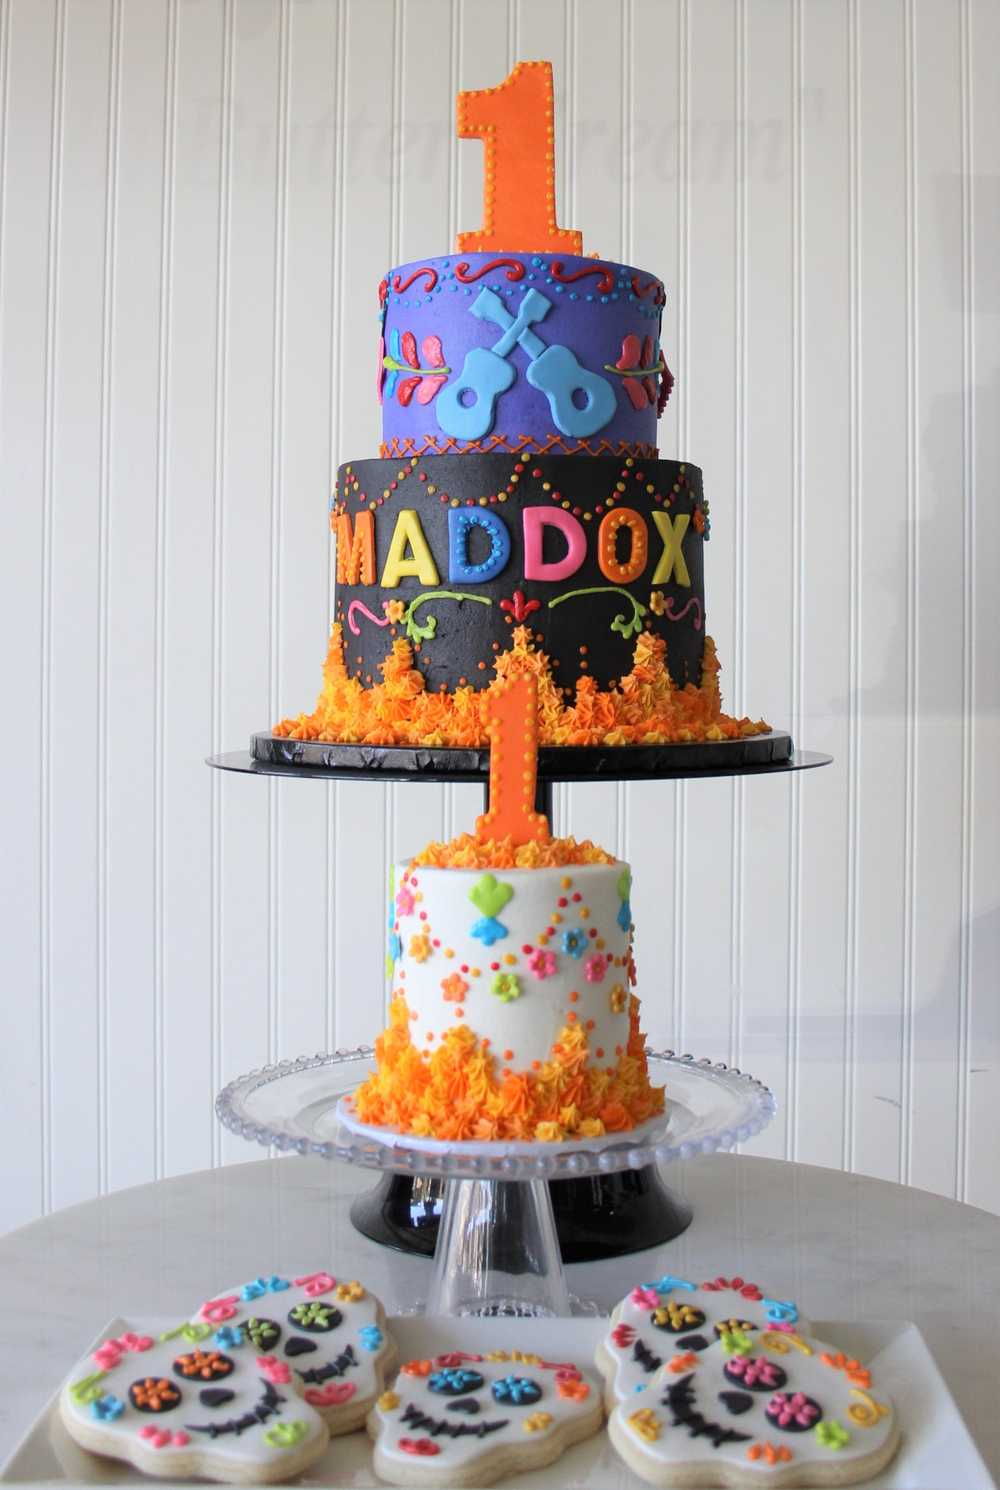 Superb Frosted Cakery Cakes Cupcakes Desserts Wedding Cakes In Fresno Funny Birthday Cards Online Alyptdamsfinfo